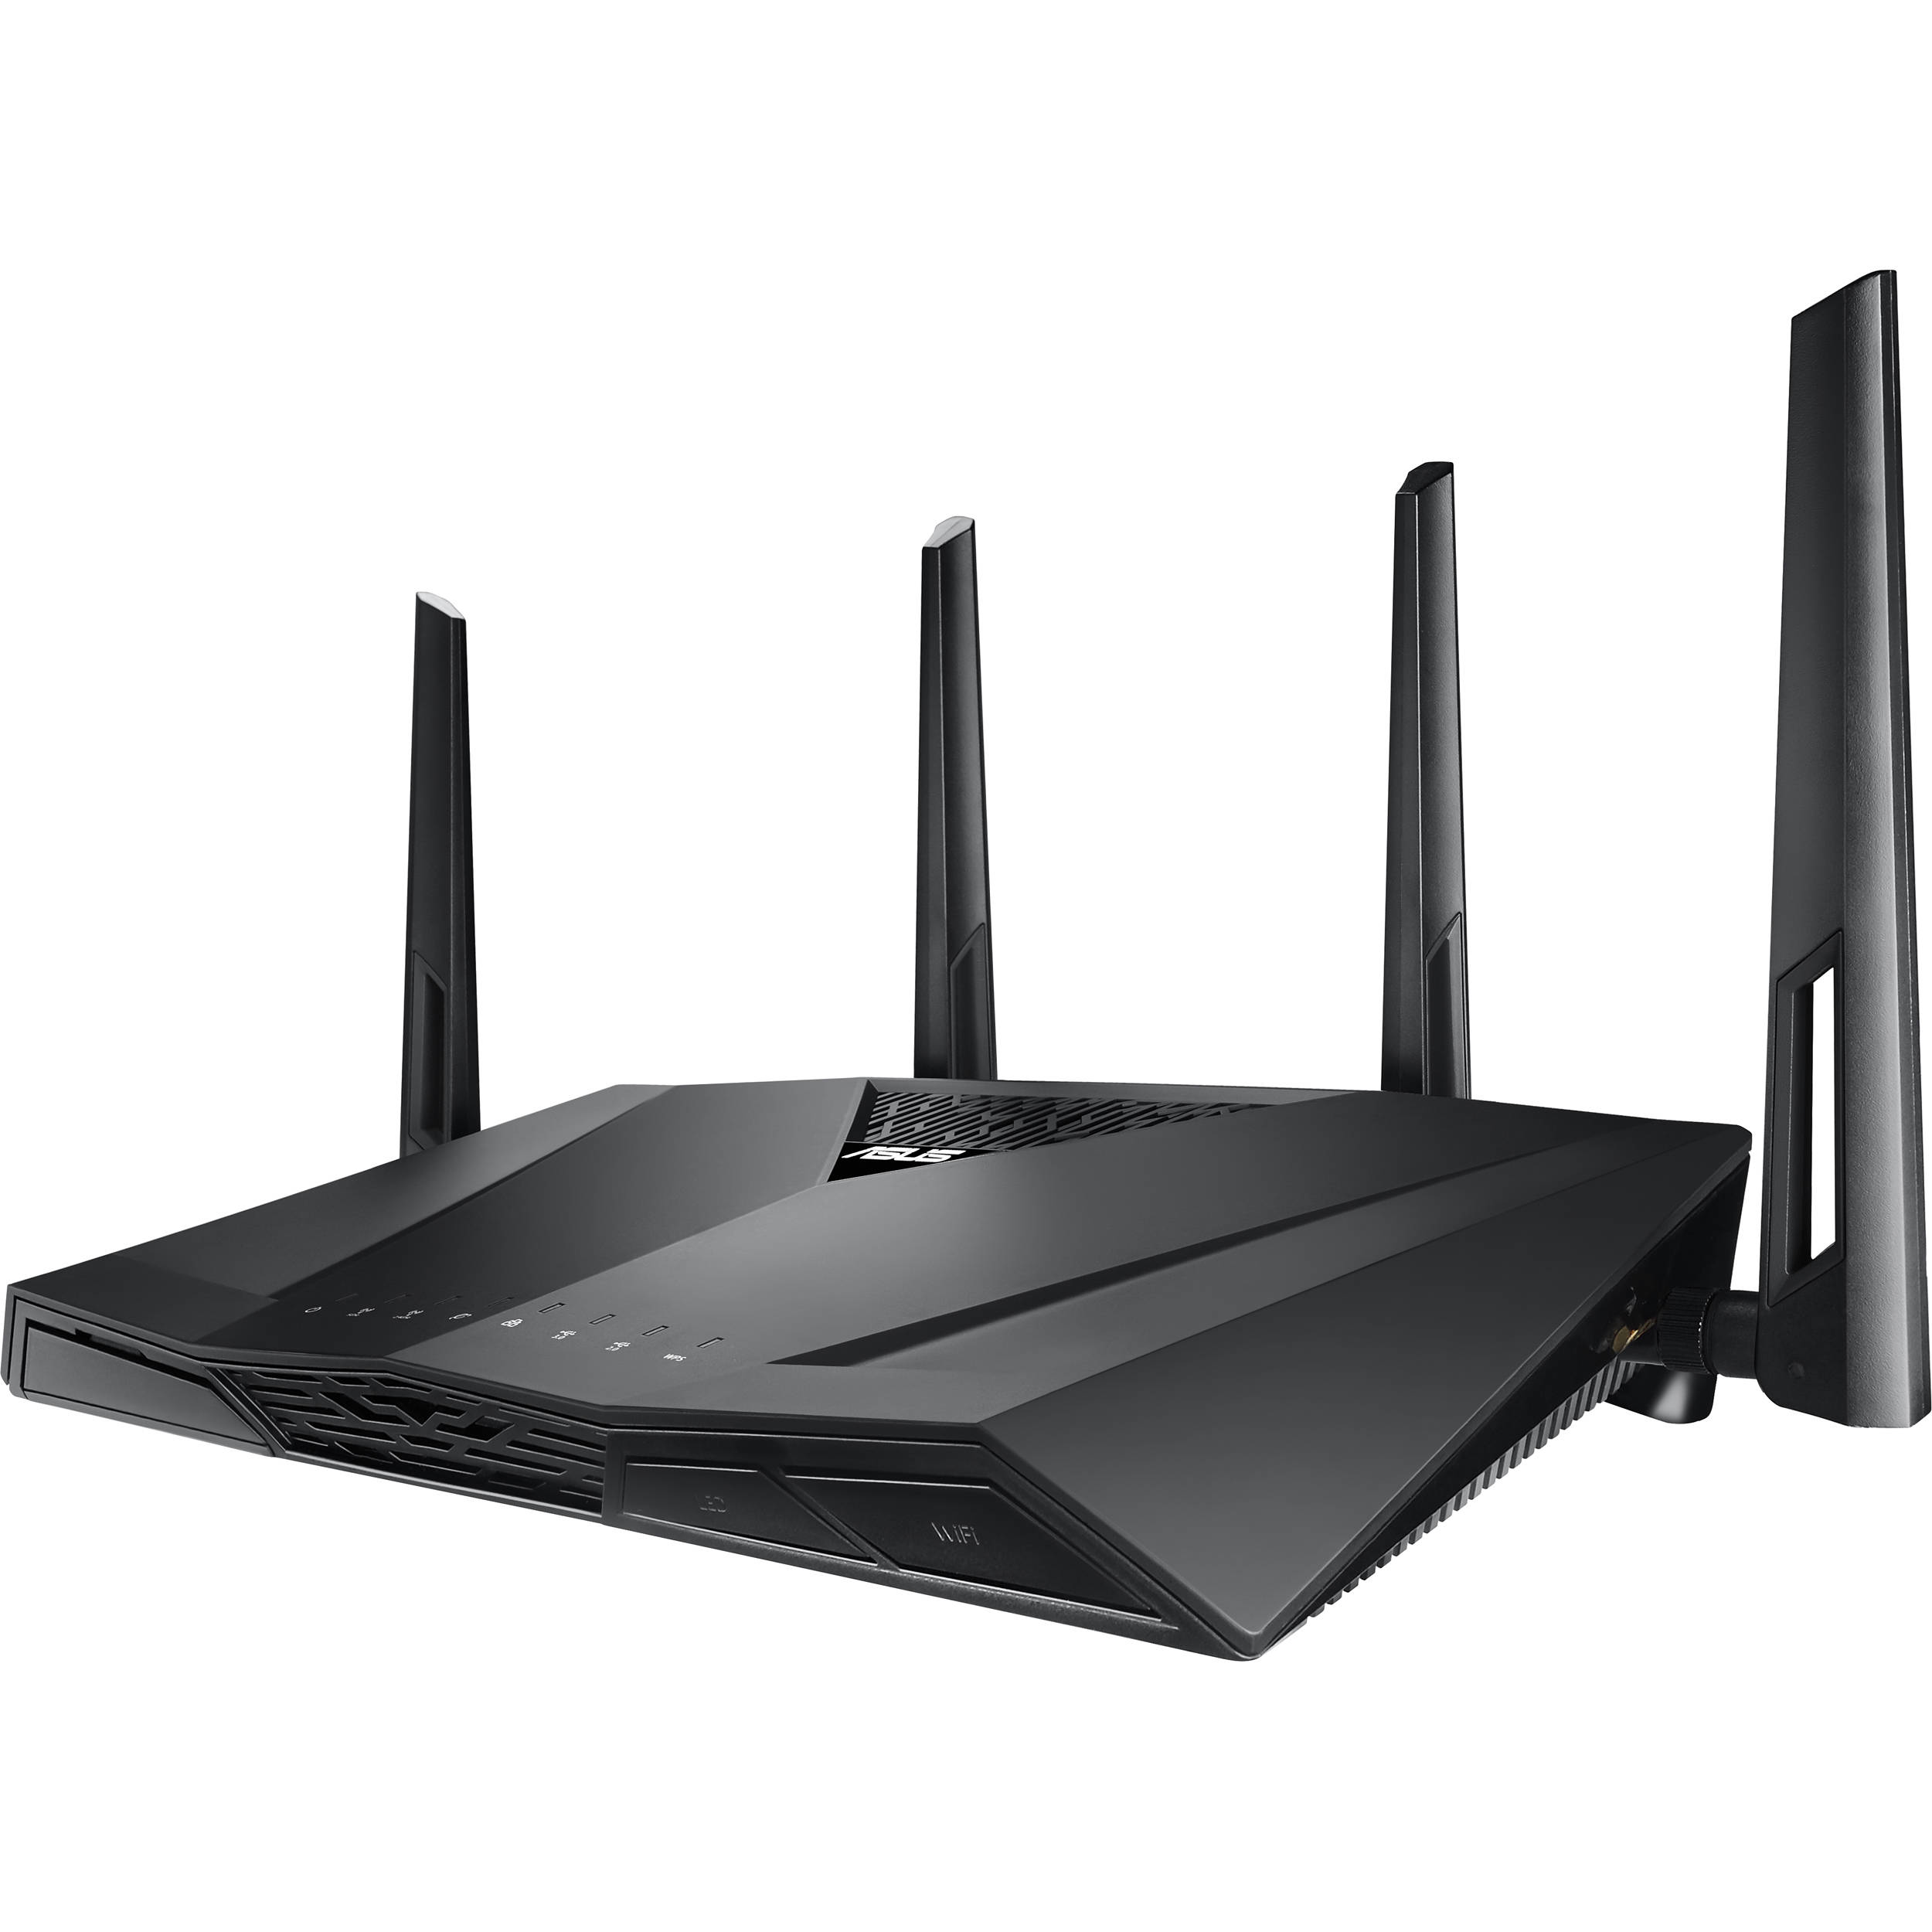 ASUS RT-AC3100 Dual-Band Wireless-AC3100 Gigabit Router